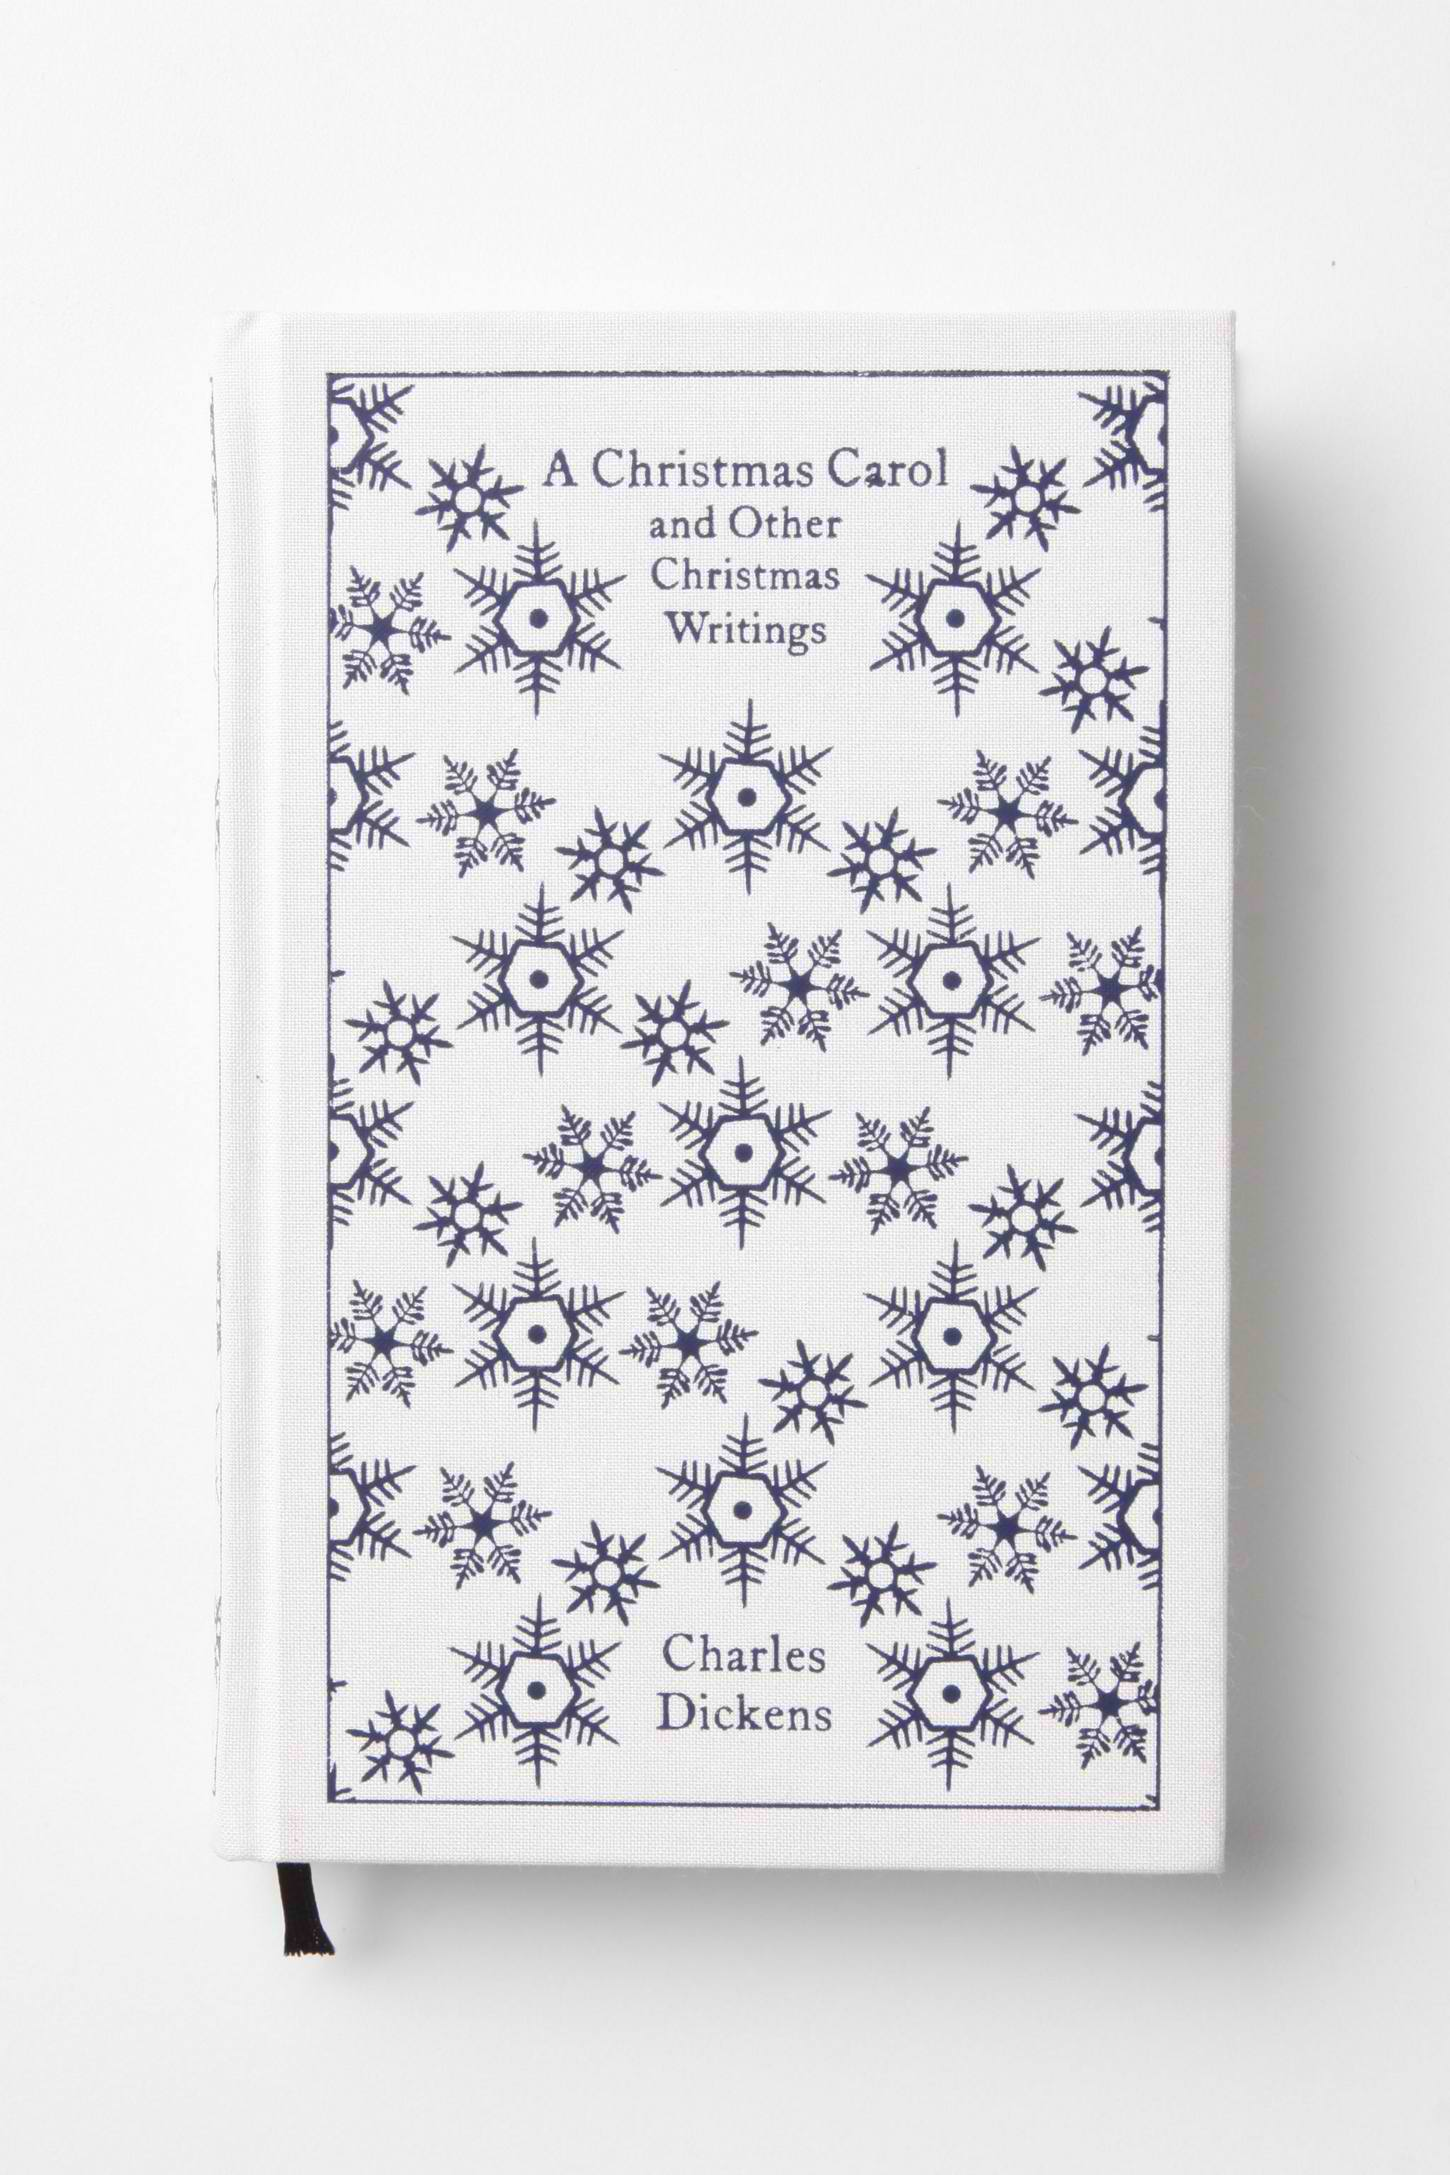 a christmas carol by charles dickens - penguin classics edition